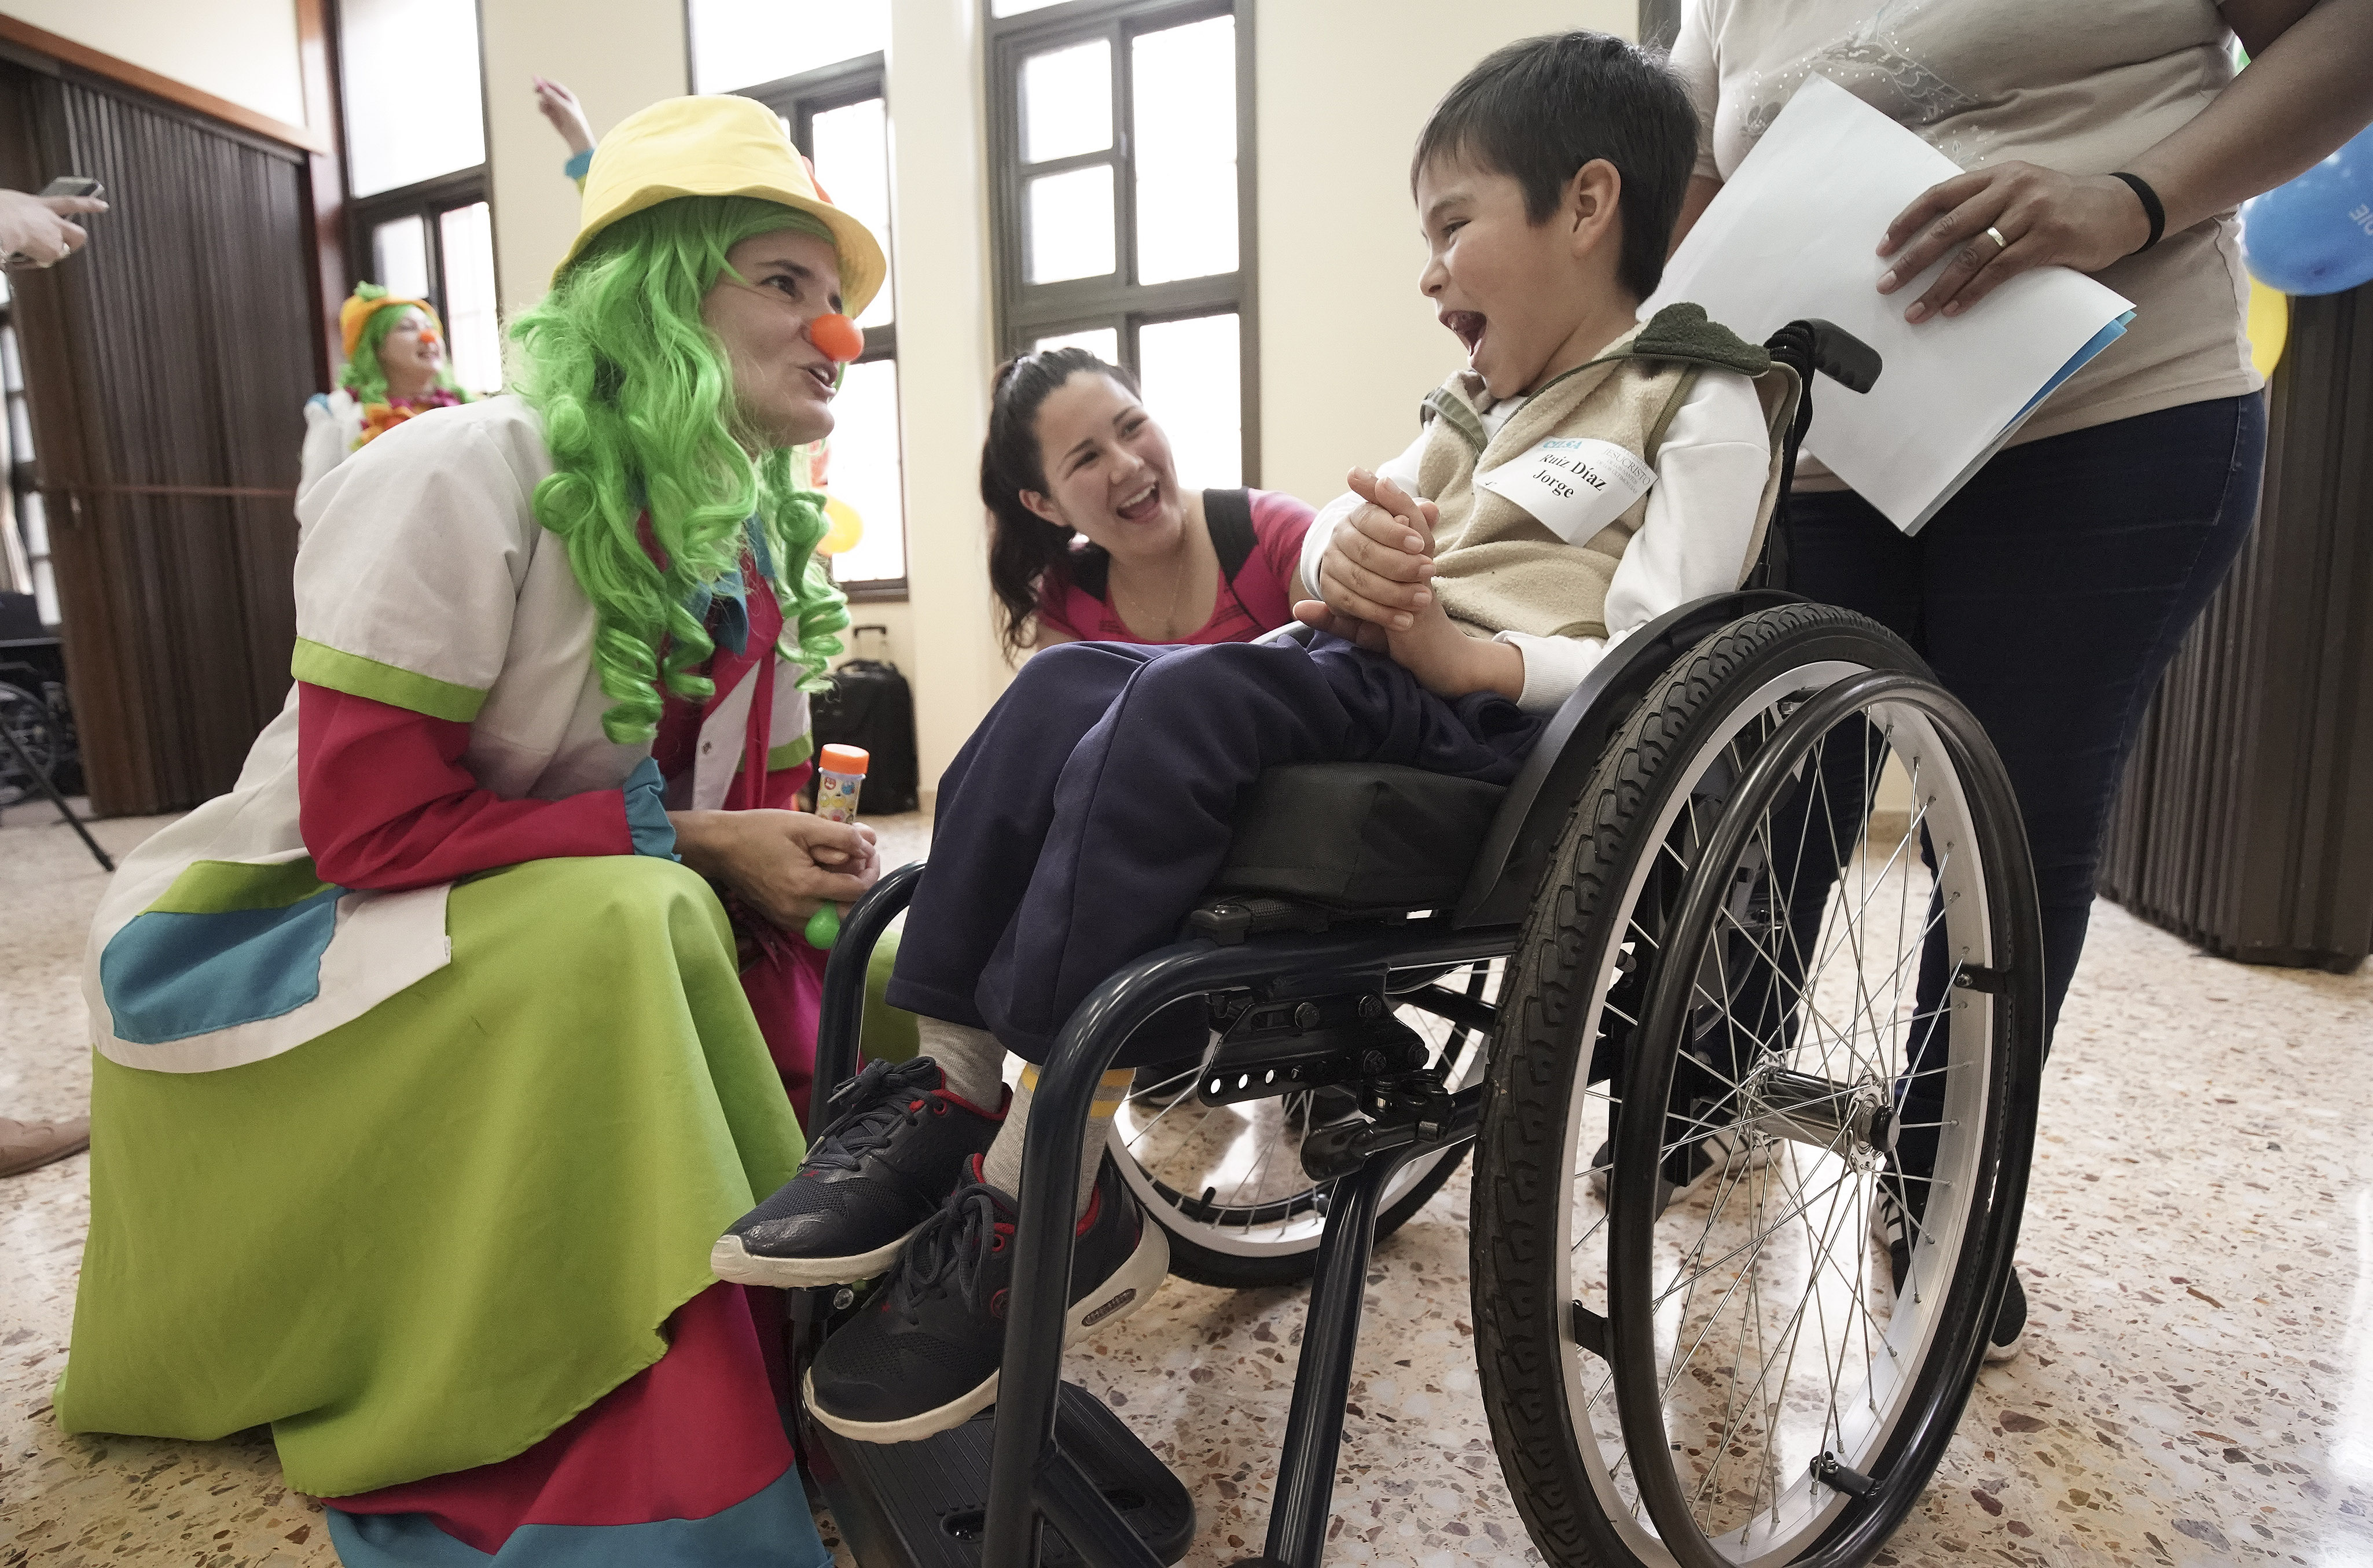 Jorge Diaz is entertained as Latter-day Saint Charities donated wheelchairs to recipients at the Villa Urquiza Ward meetinghouse in Buenos Aires, Argentina, on Wednesday, Aug. 28, 2019.